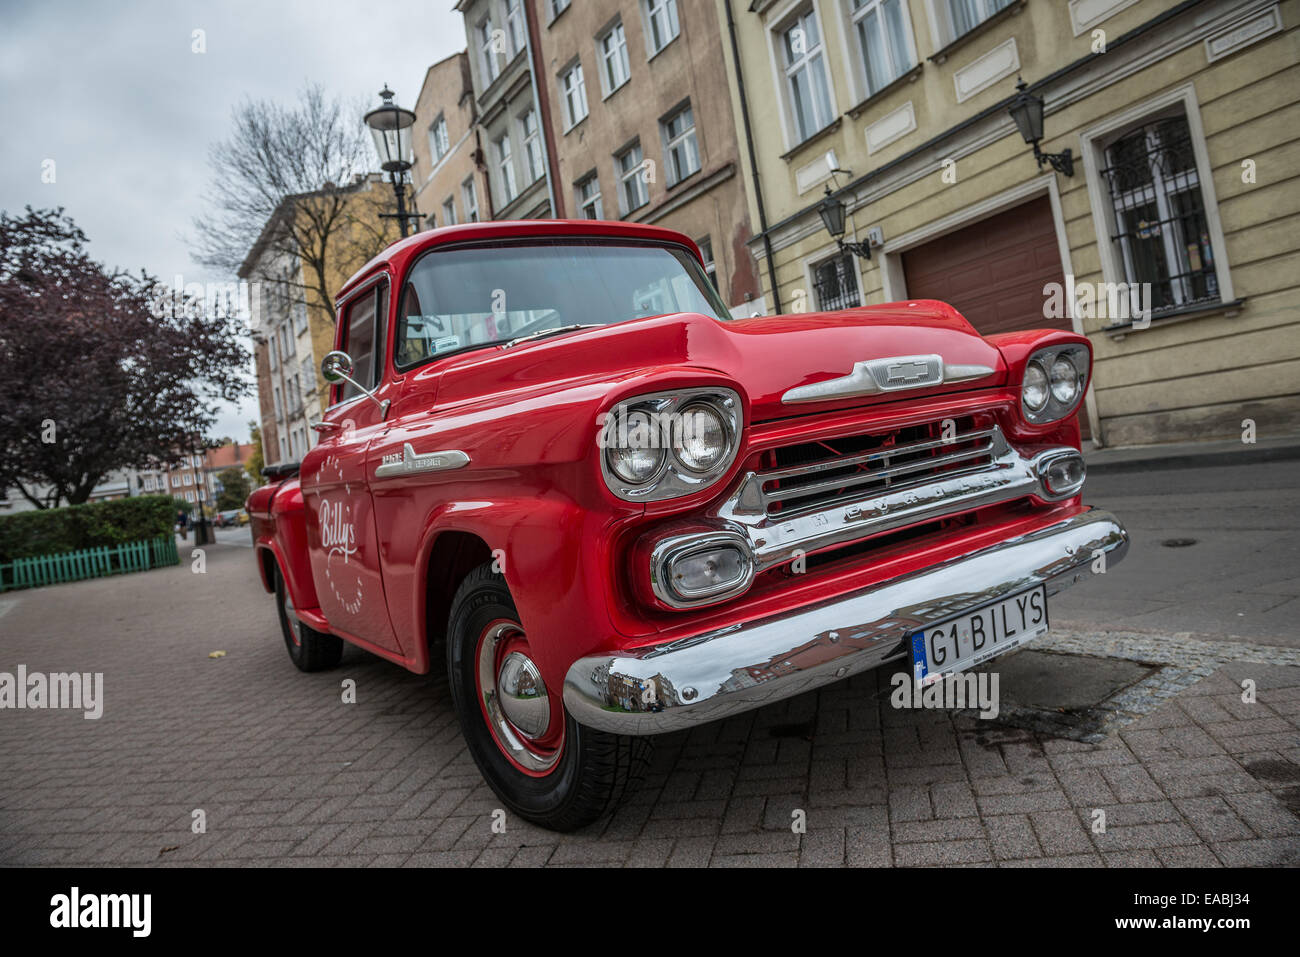 Chevrolet apache pick up from american restaurant billy s on old town i gdansk poland